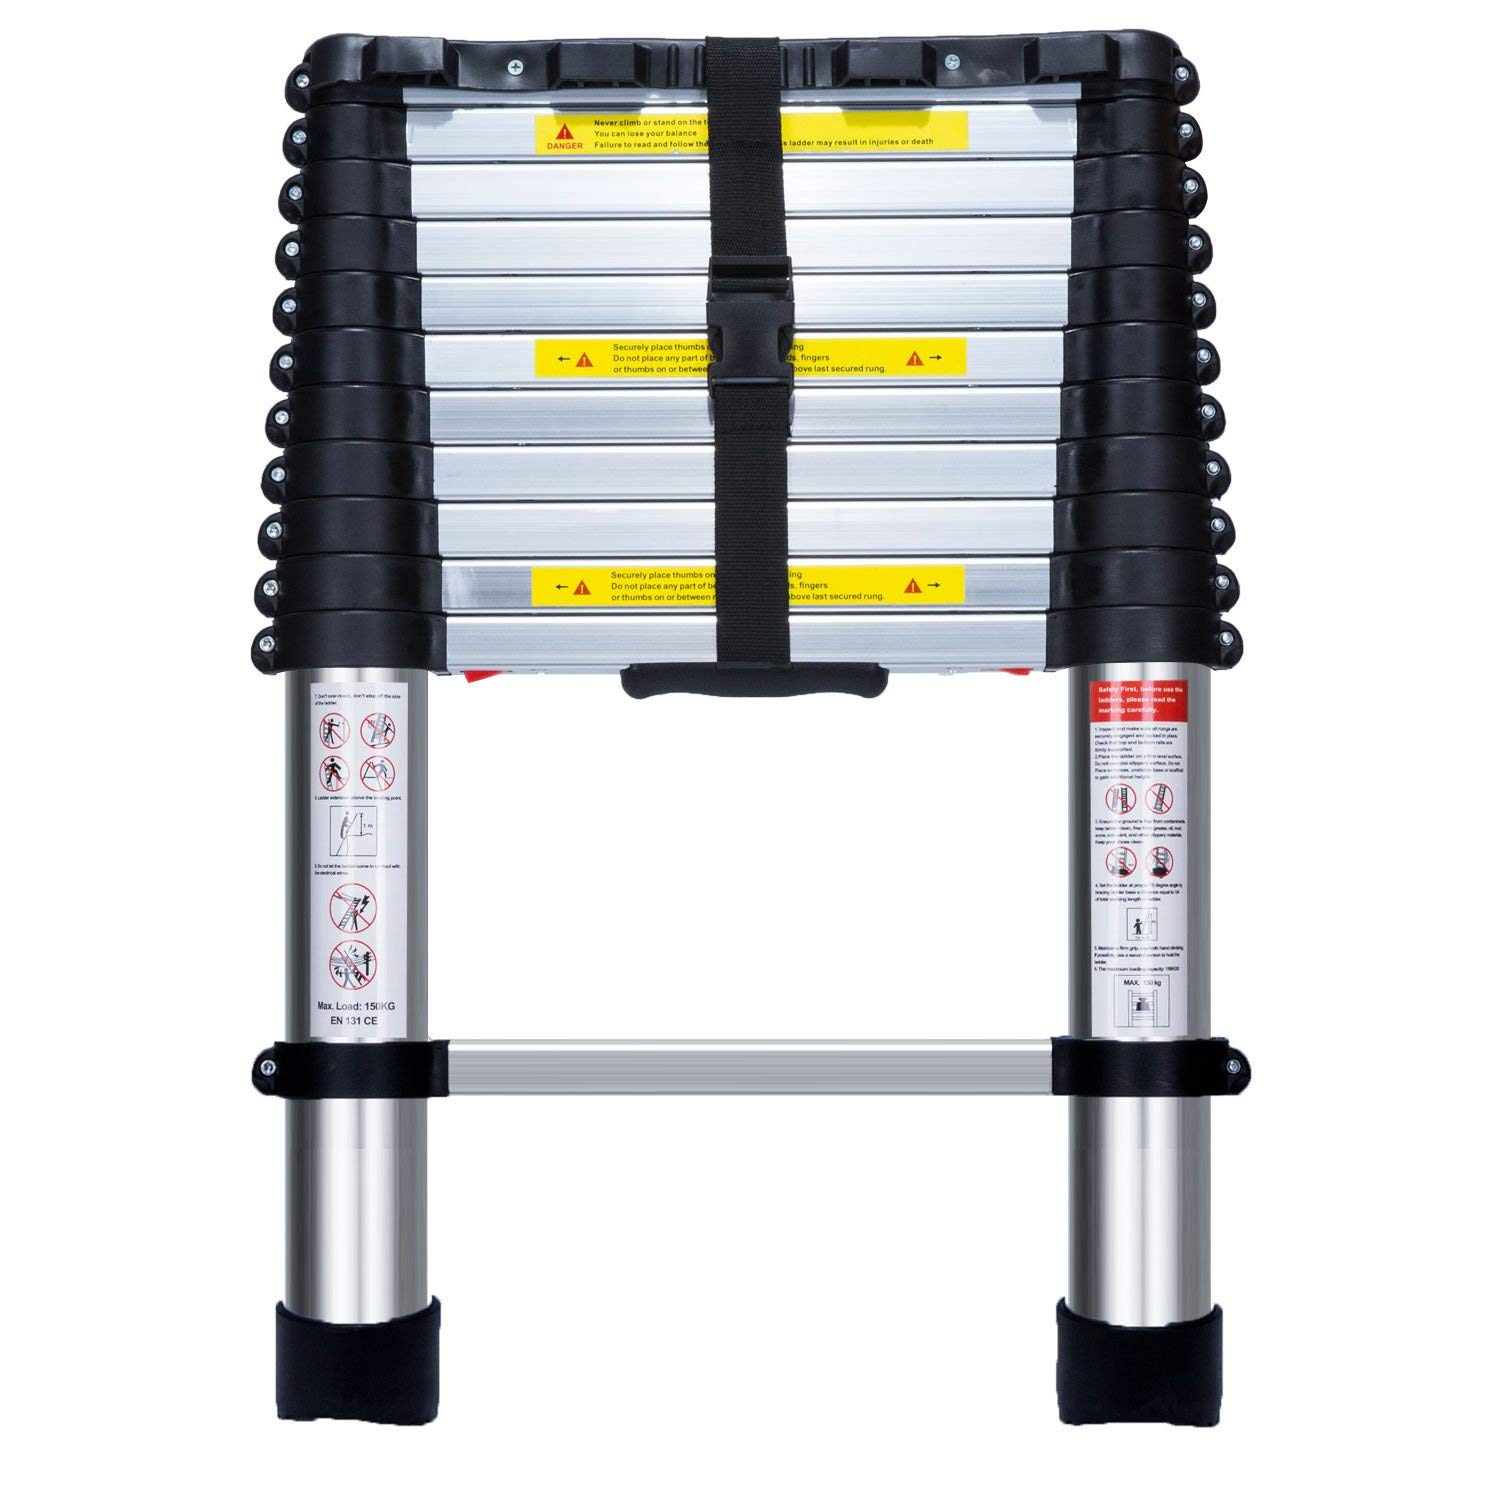 En131 telescopic ladder brightest t12 bulb